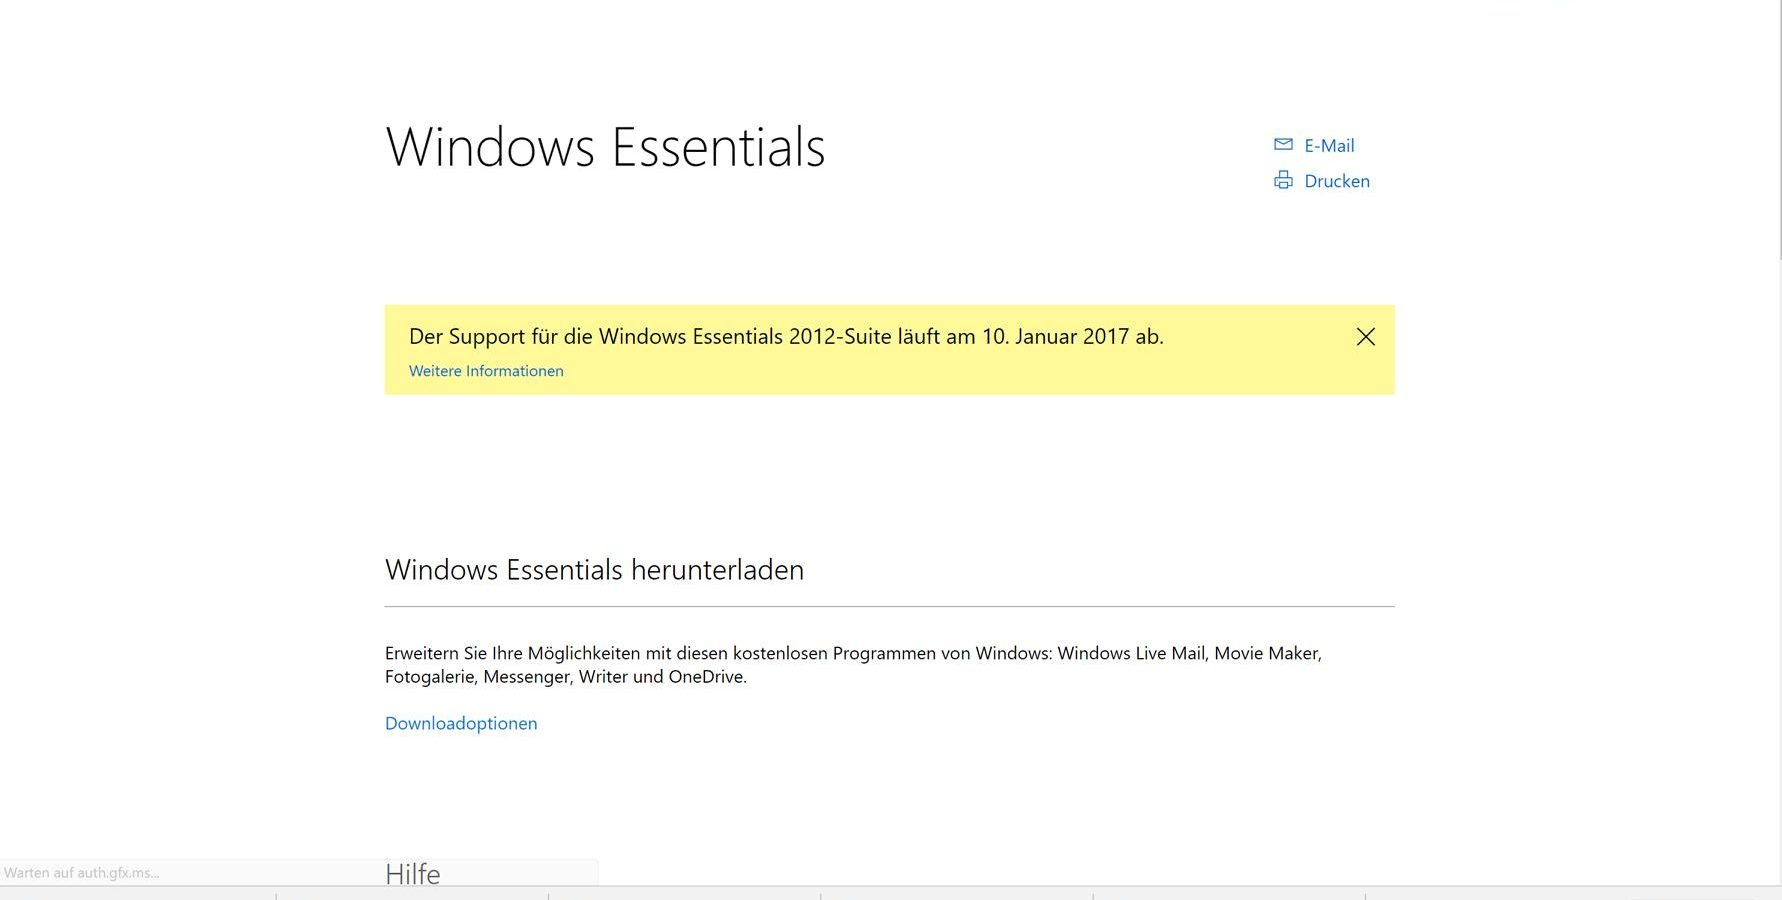 Windows Essentials 2012 Supportende